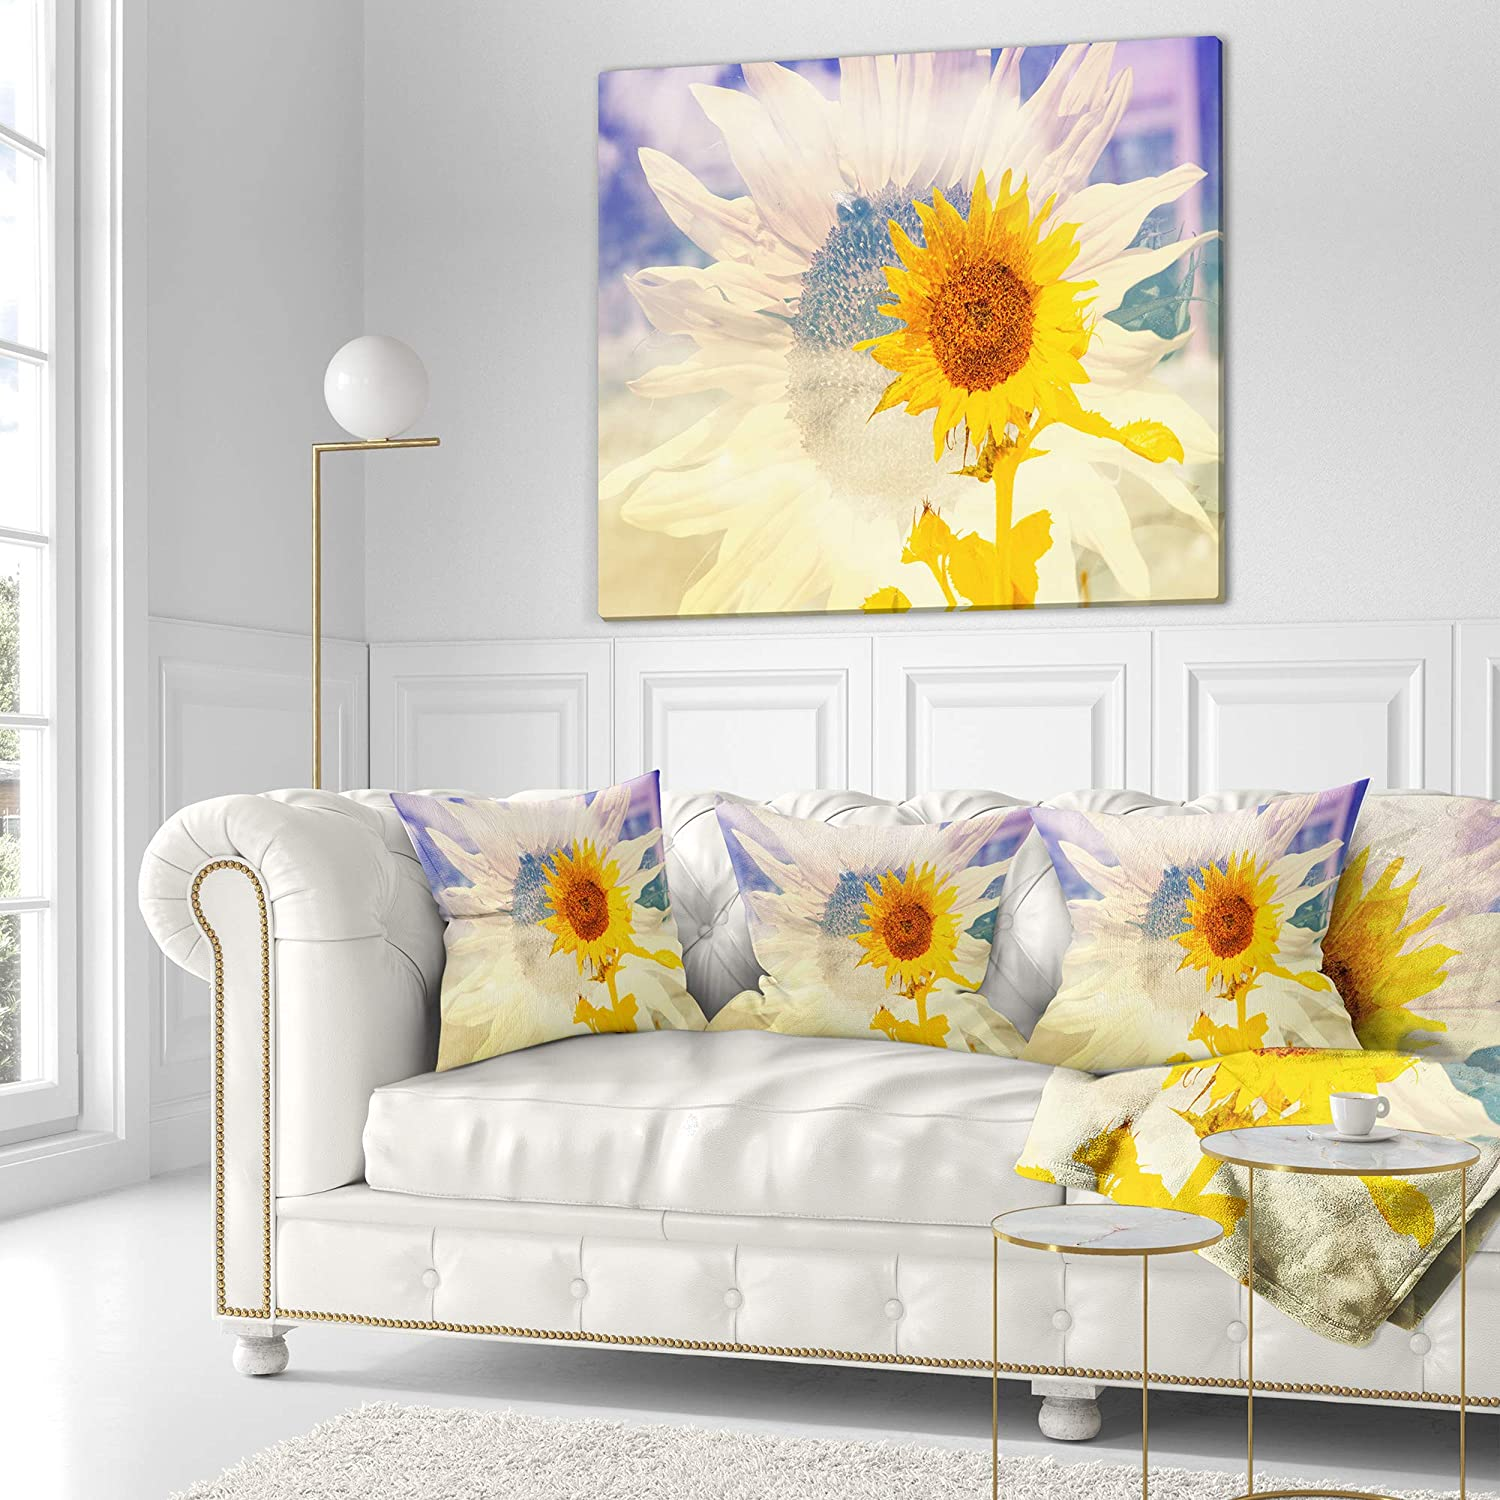 18 in in Designart CU14456-18-18 Double Exposure Yellow Sunflowers Floral Cushion Cover for Living Room Sofa Throw Pillow Insert Printed On Both Side x 18 in